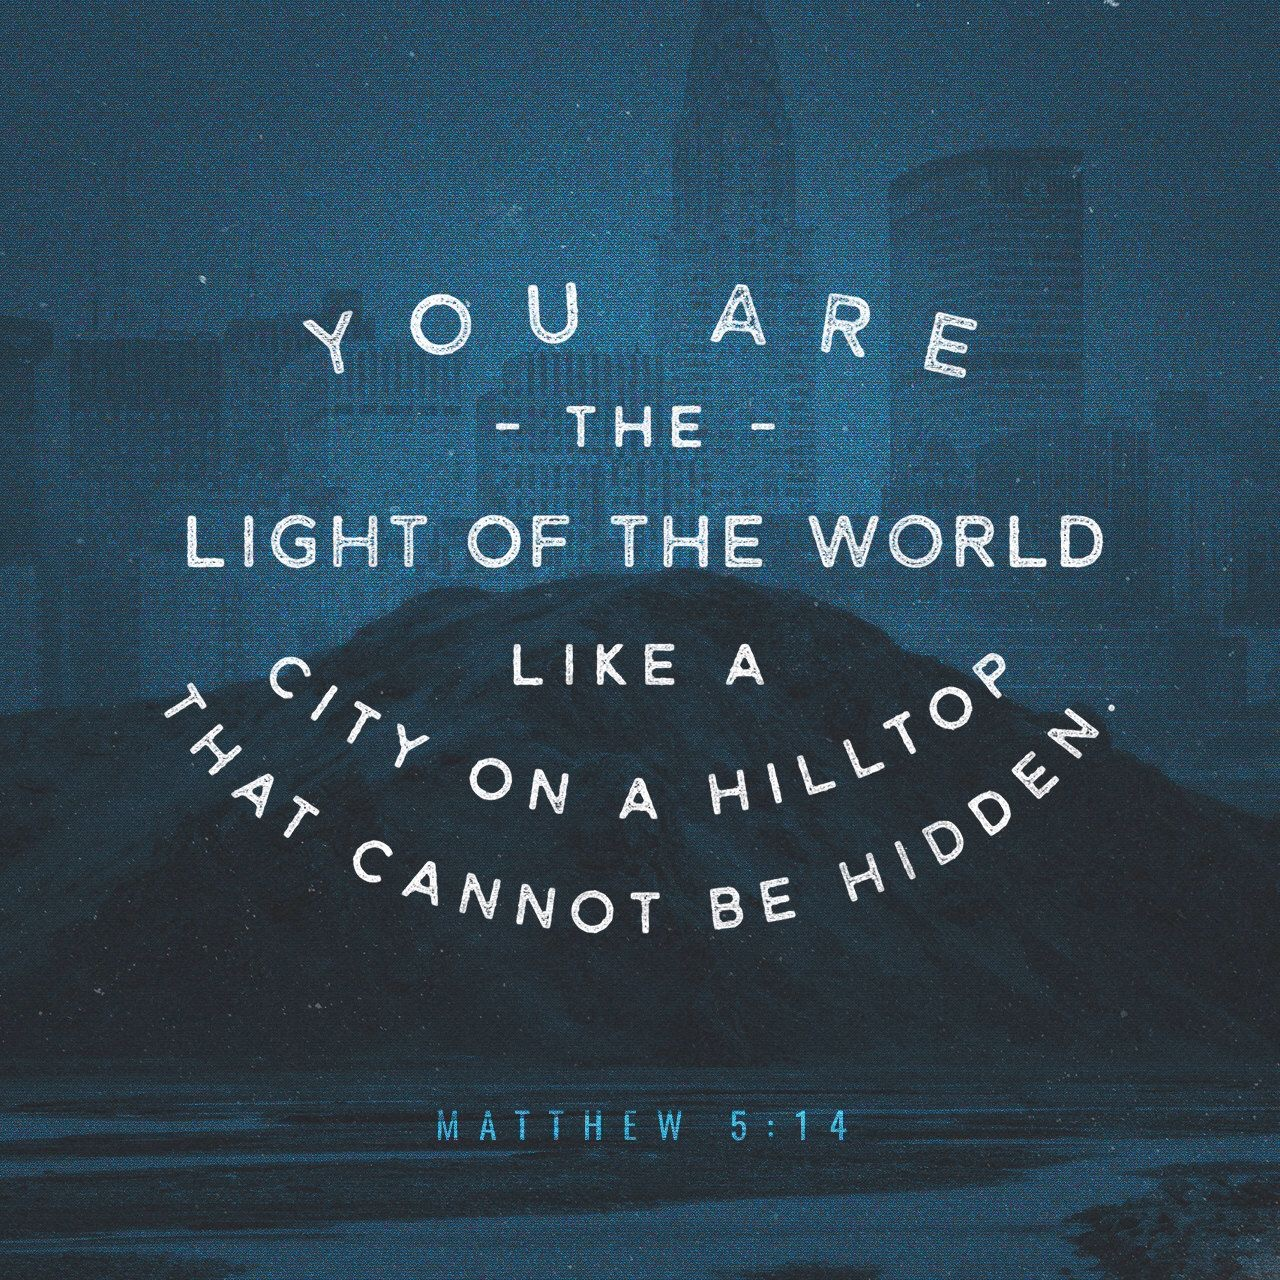 Matthew 5:14 this part of the sermon on the mount. The whole sermon is on how to be the light of the world and about God's presence with us in the struggle